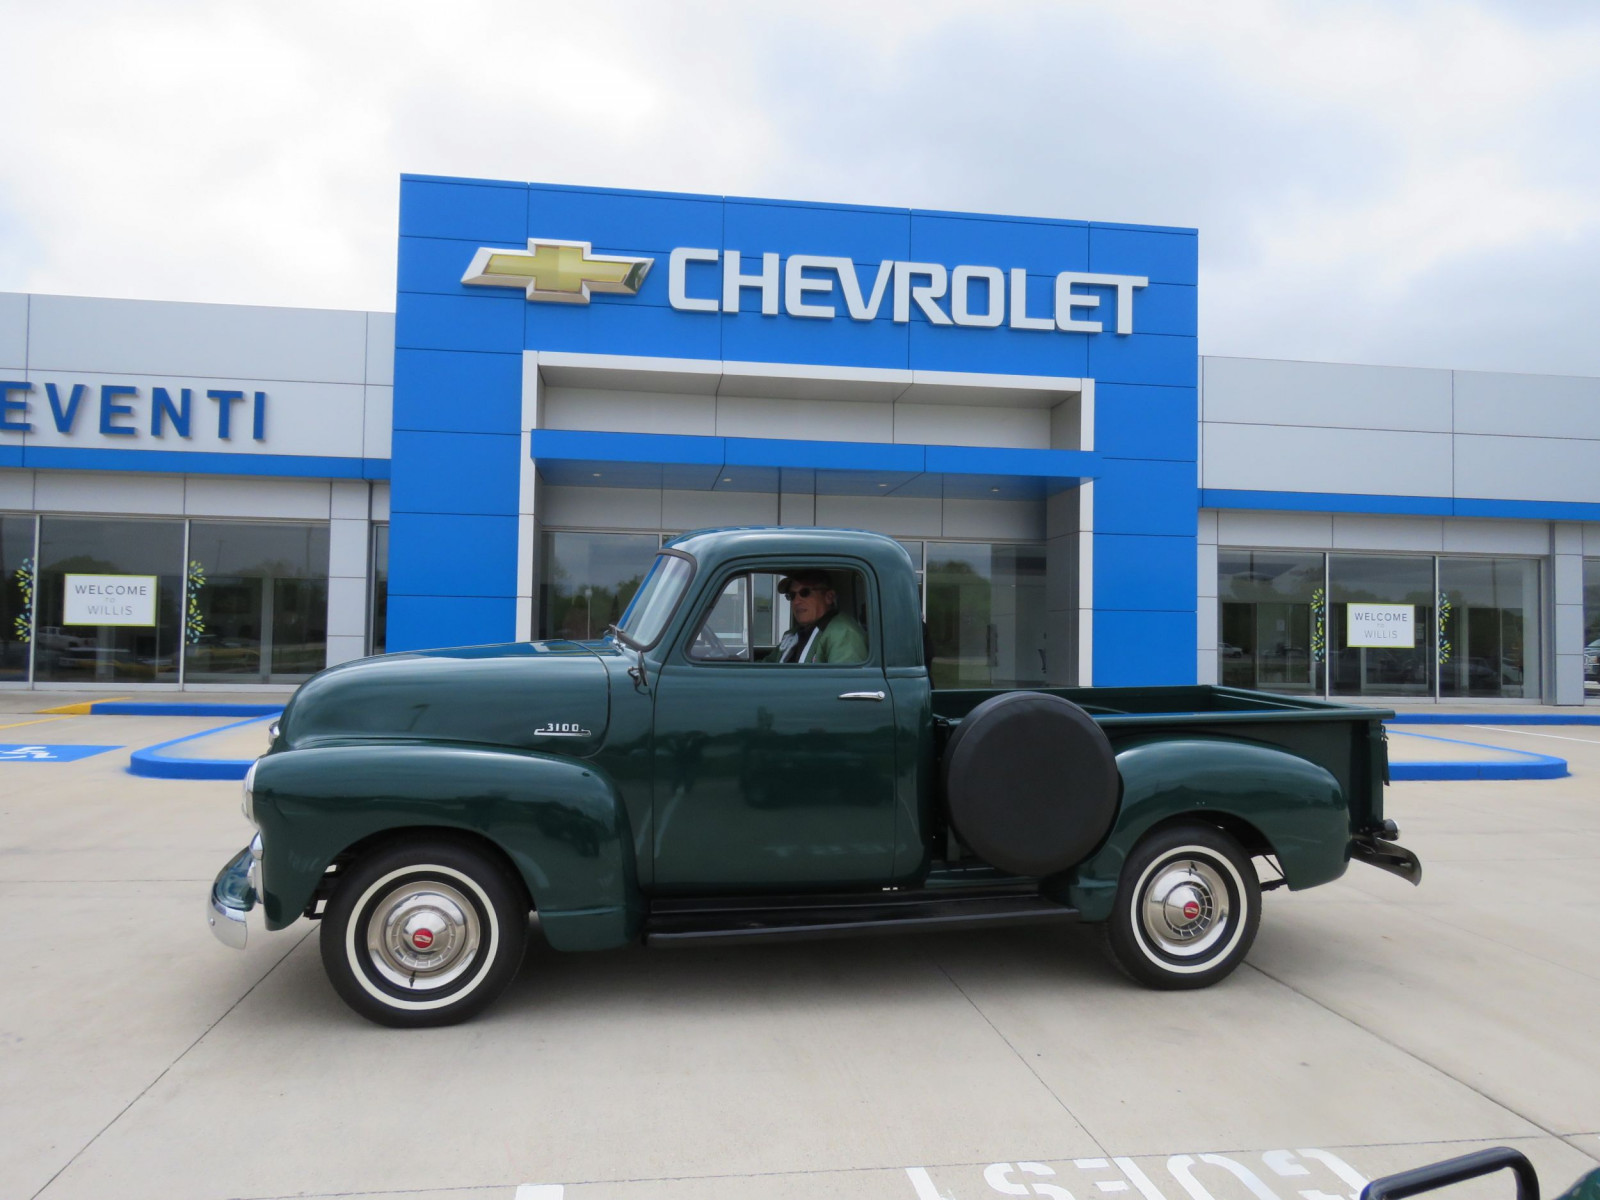 1954 Chevrolet 3100 Series Pickup - Image 1